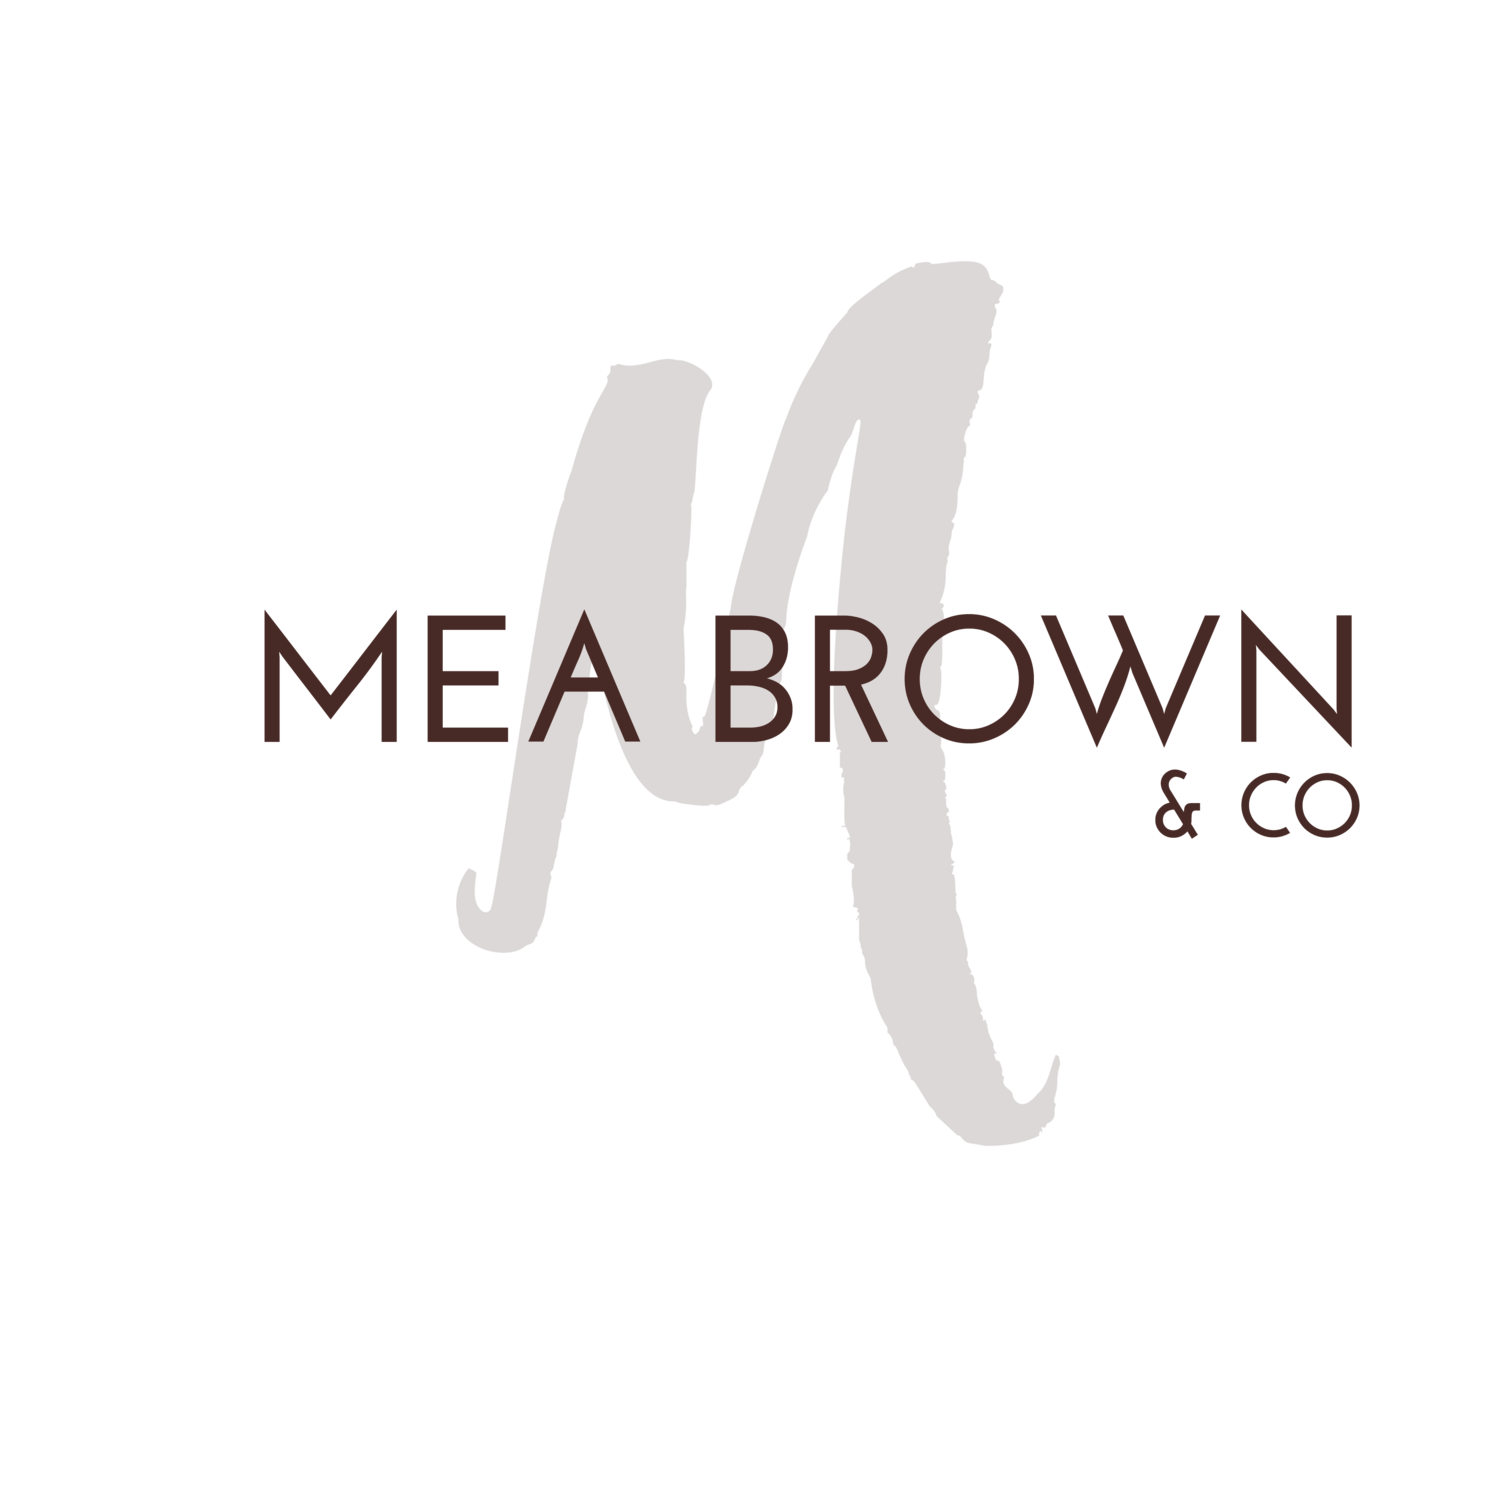 Mea Brown & Co.